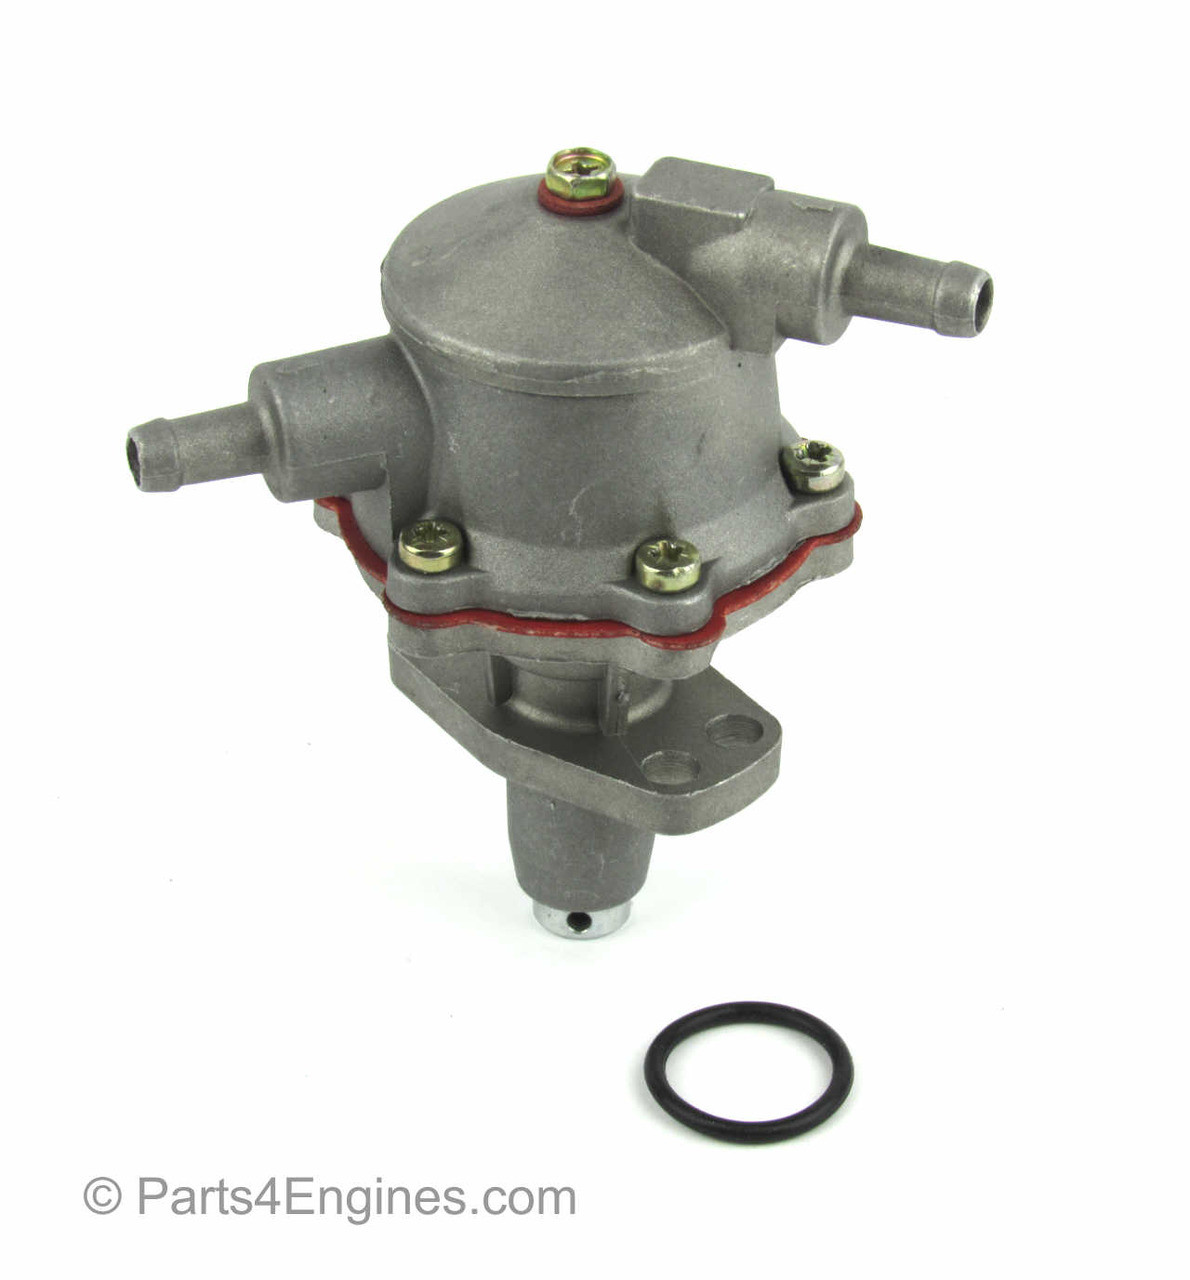 Type B - Perkins 400 series Fuel lift pump kit from parts4engines.com